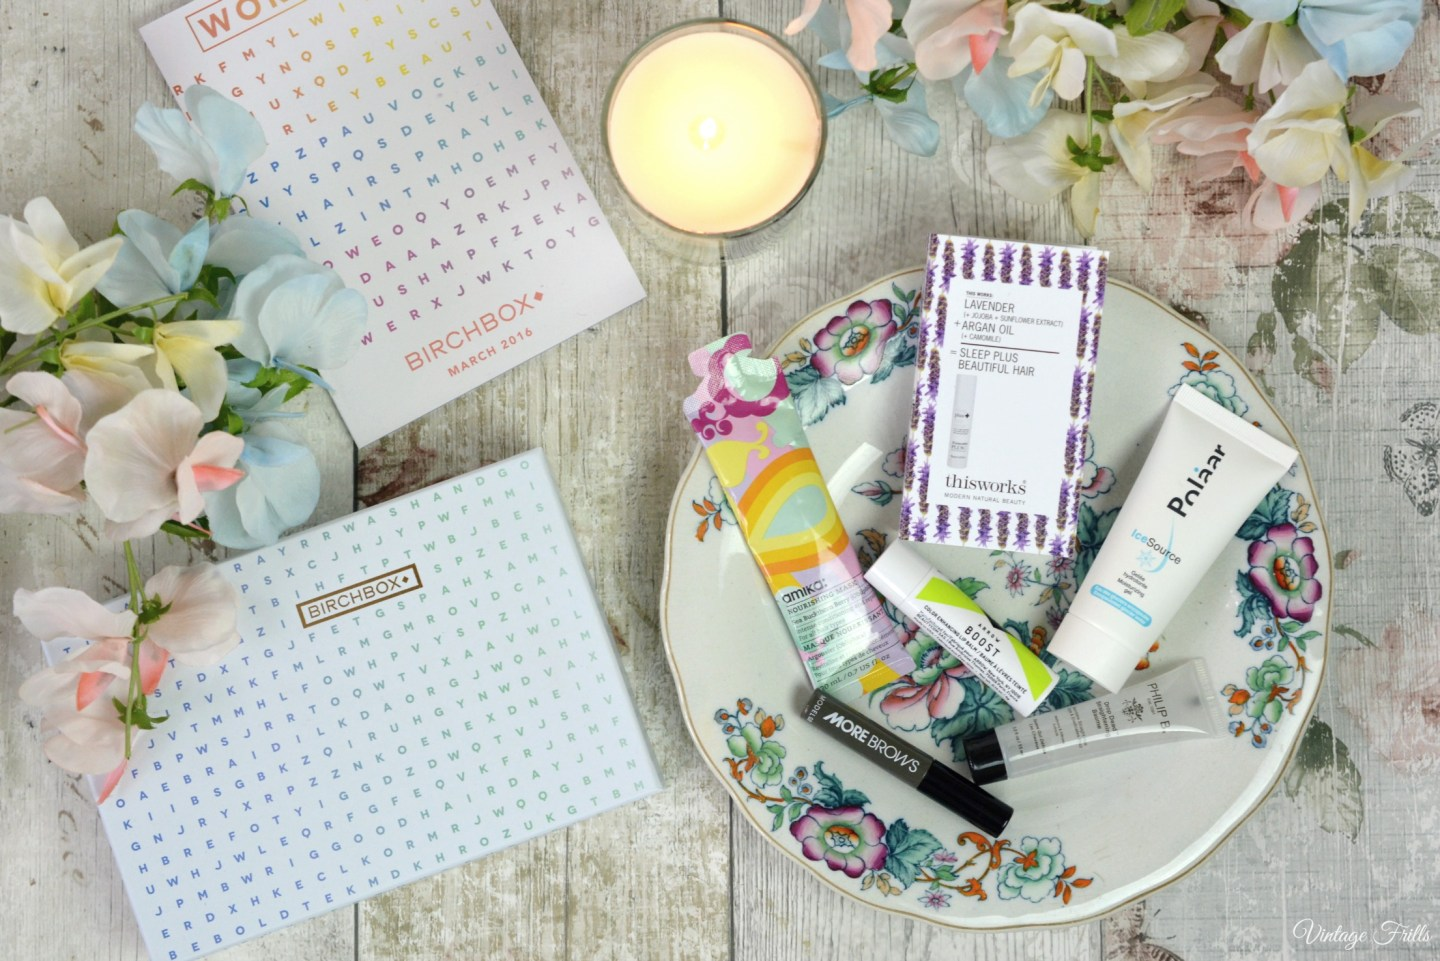 March 2016 Birchbox Review